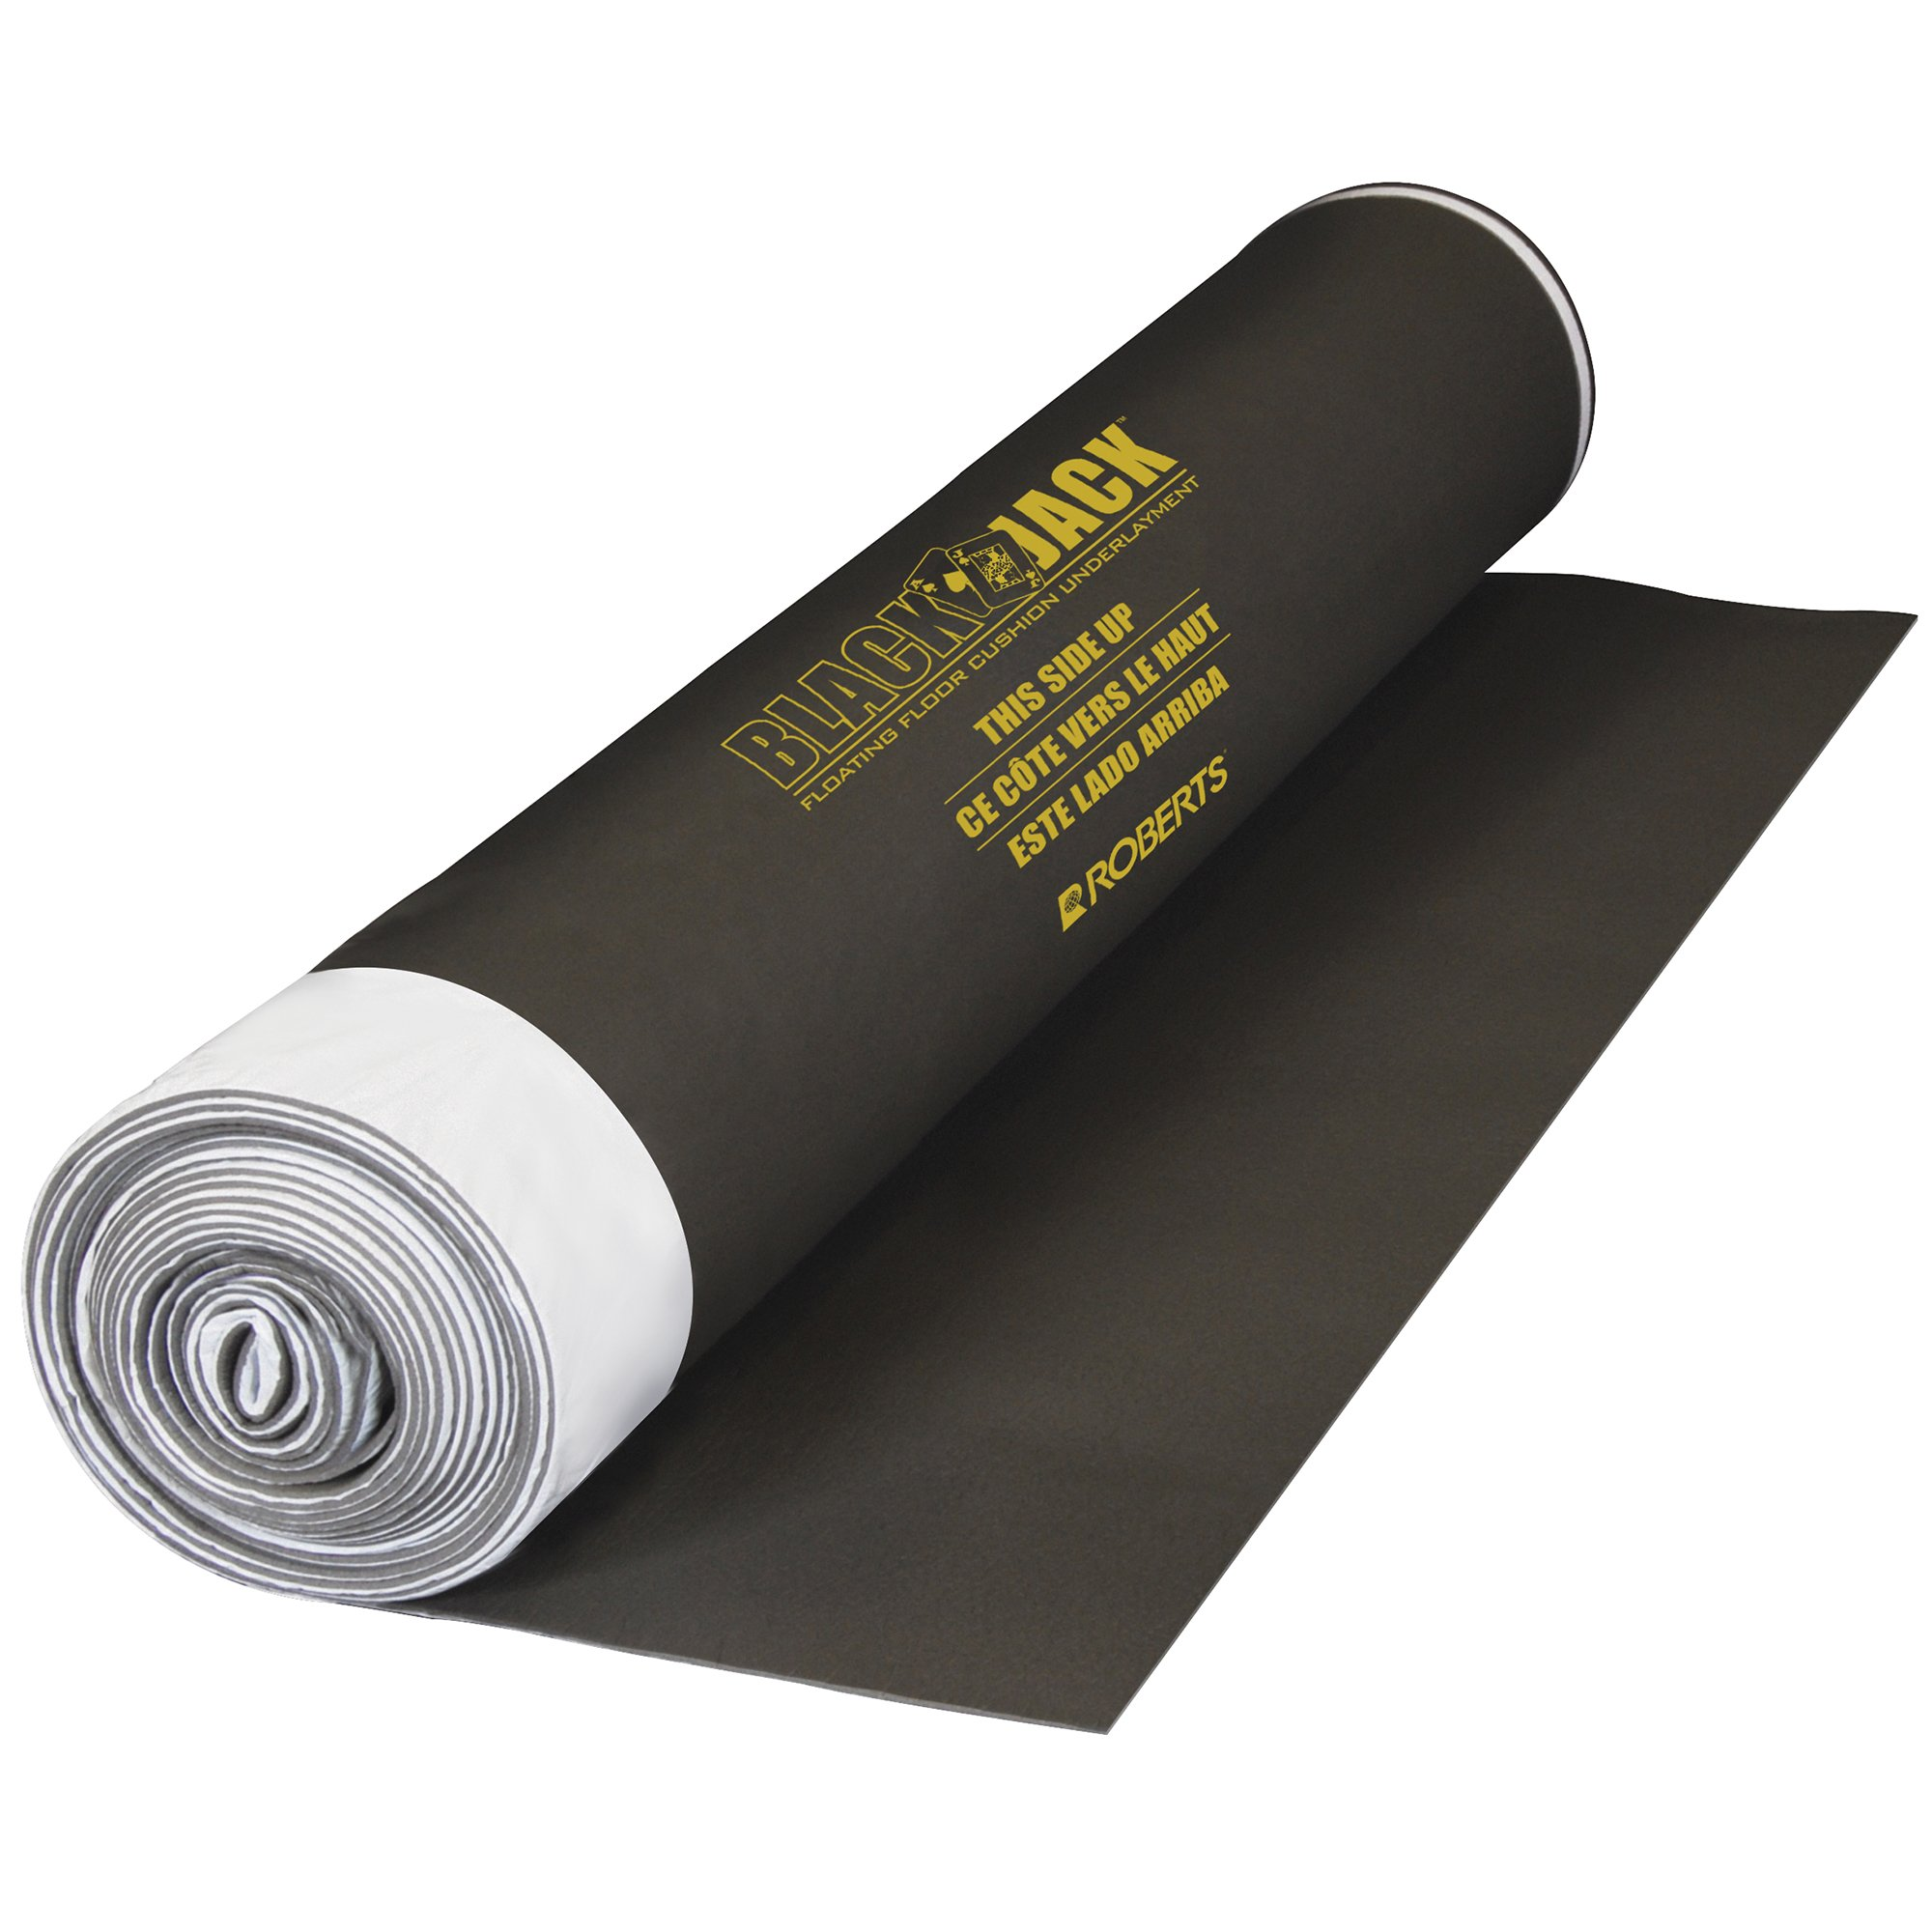 Black Jack 100 sq. ft, 28 ft. x 43 in. x 2.5 mm Roll of 2-in-1 Premium Laminate and Engineered Wood Flooring Underlayment